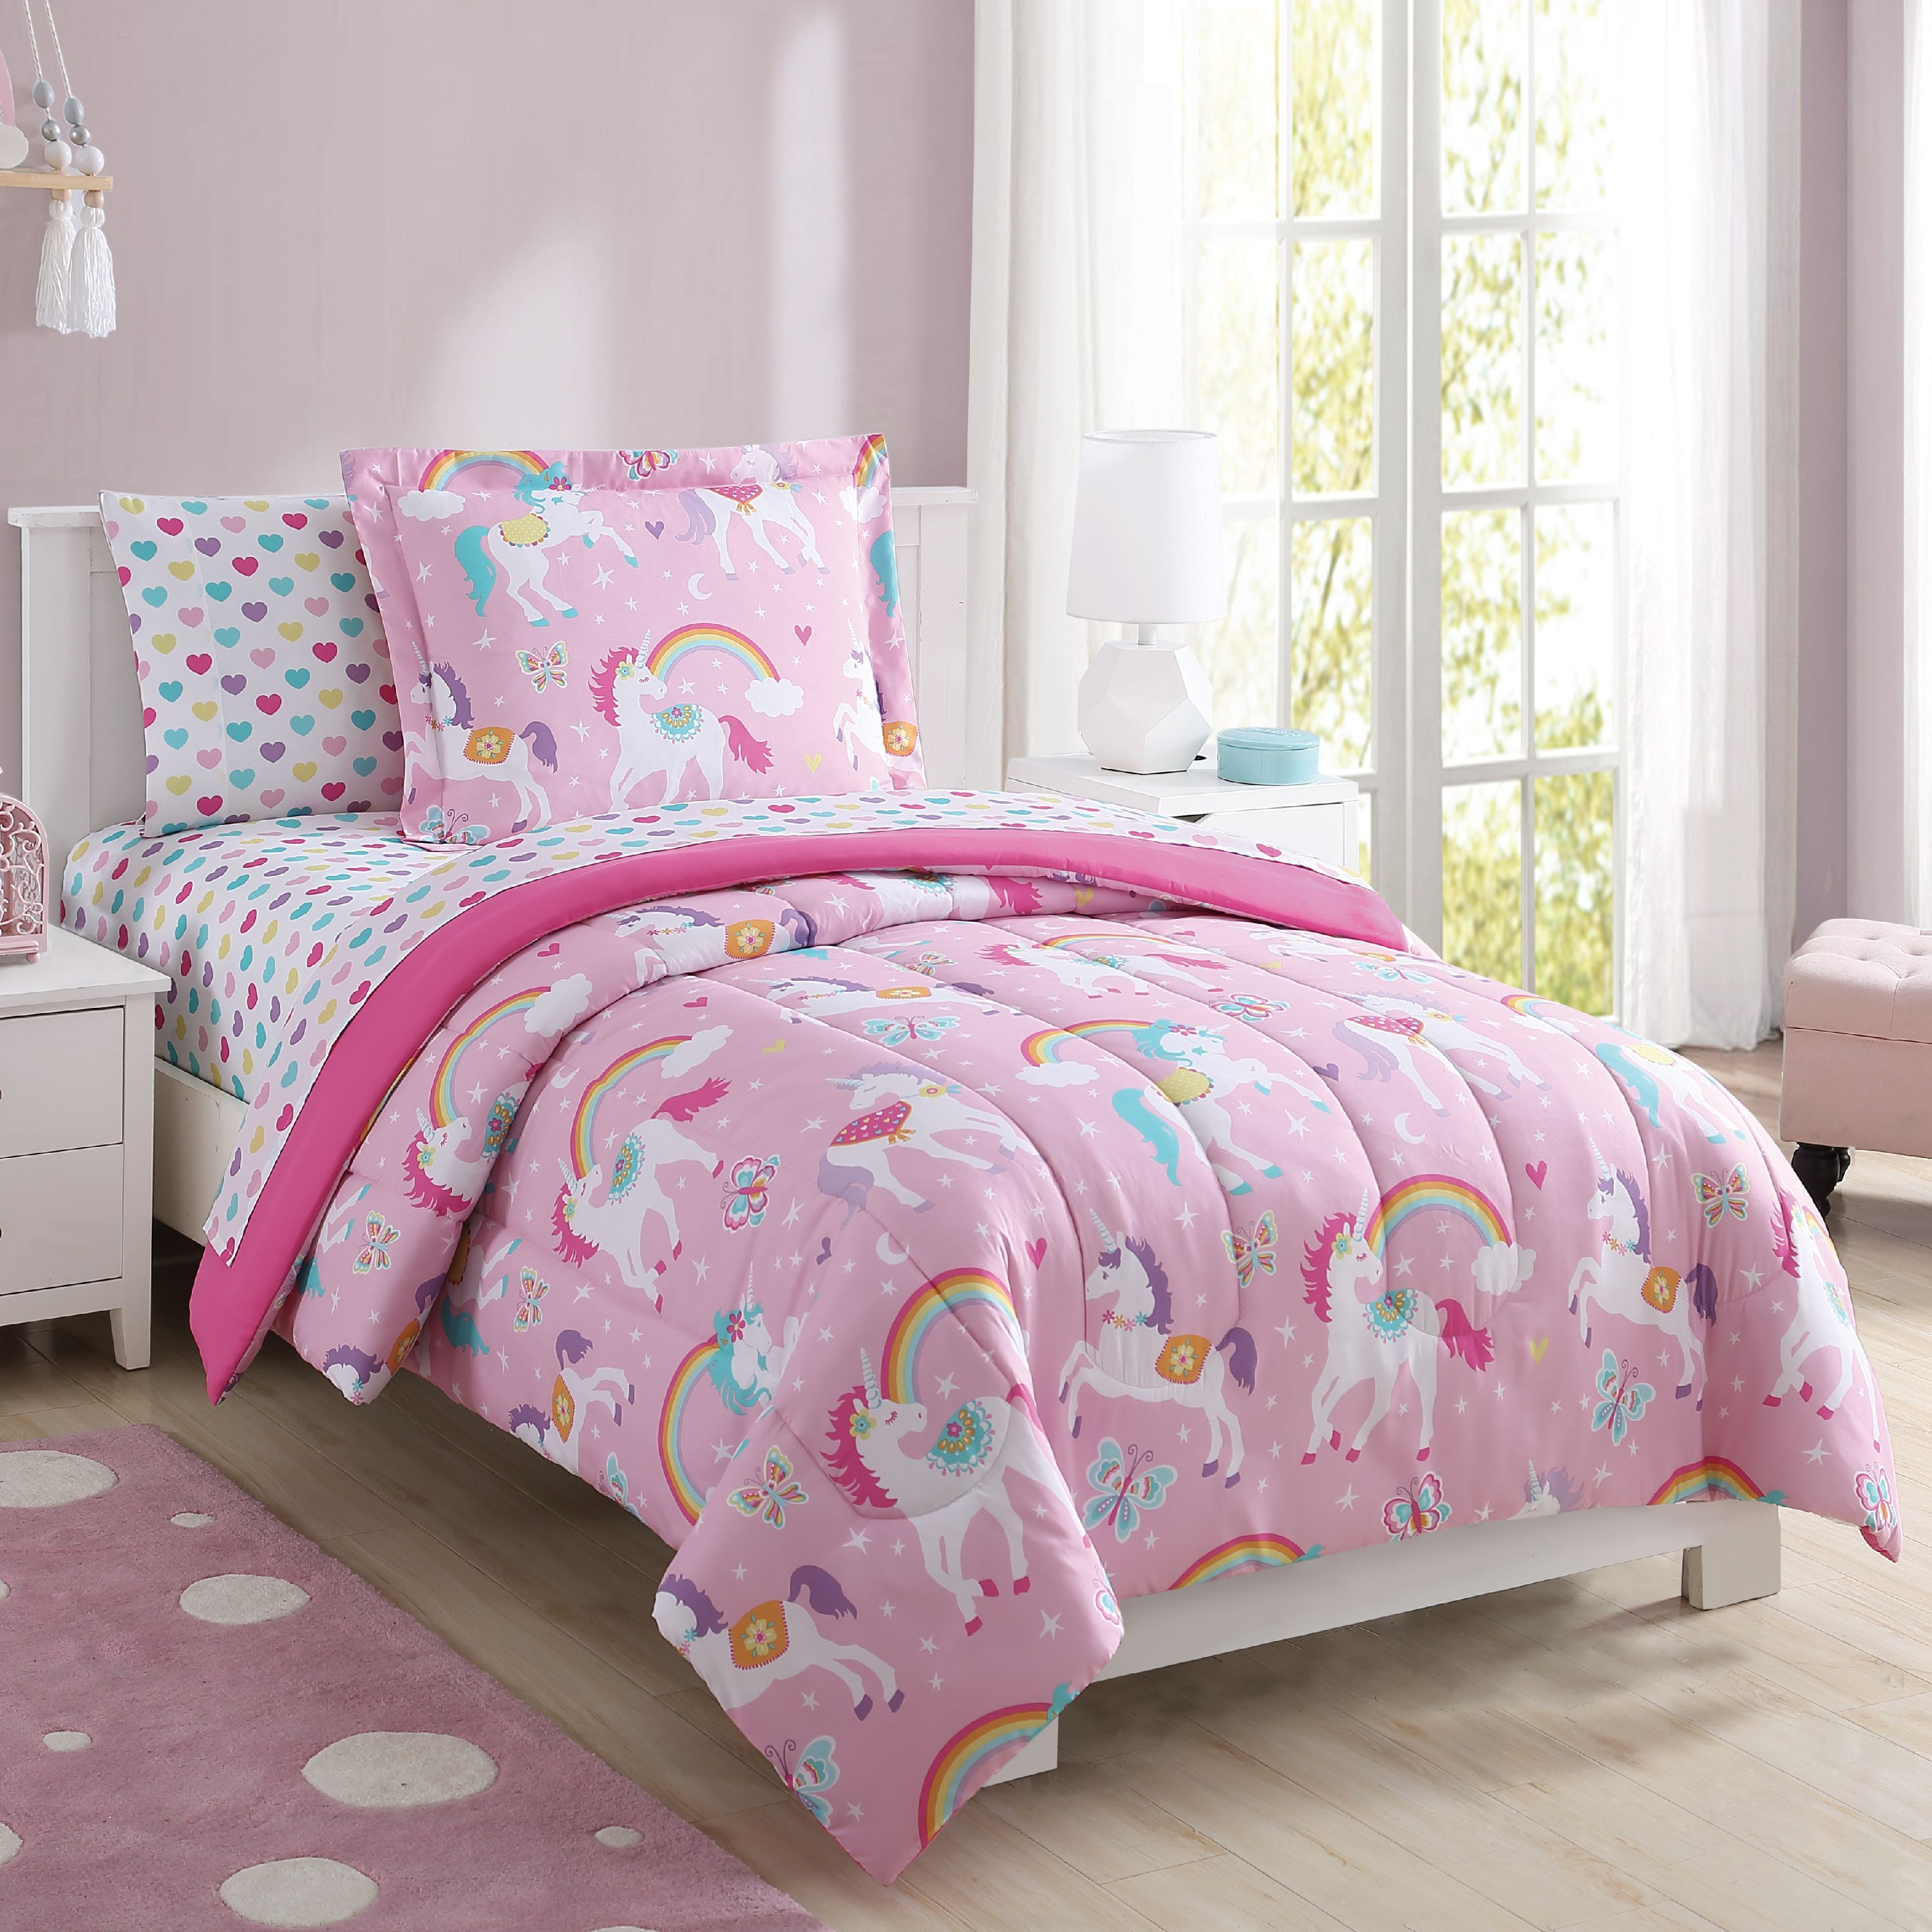 bedding strong unilovers bed set im unicorn independent a products